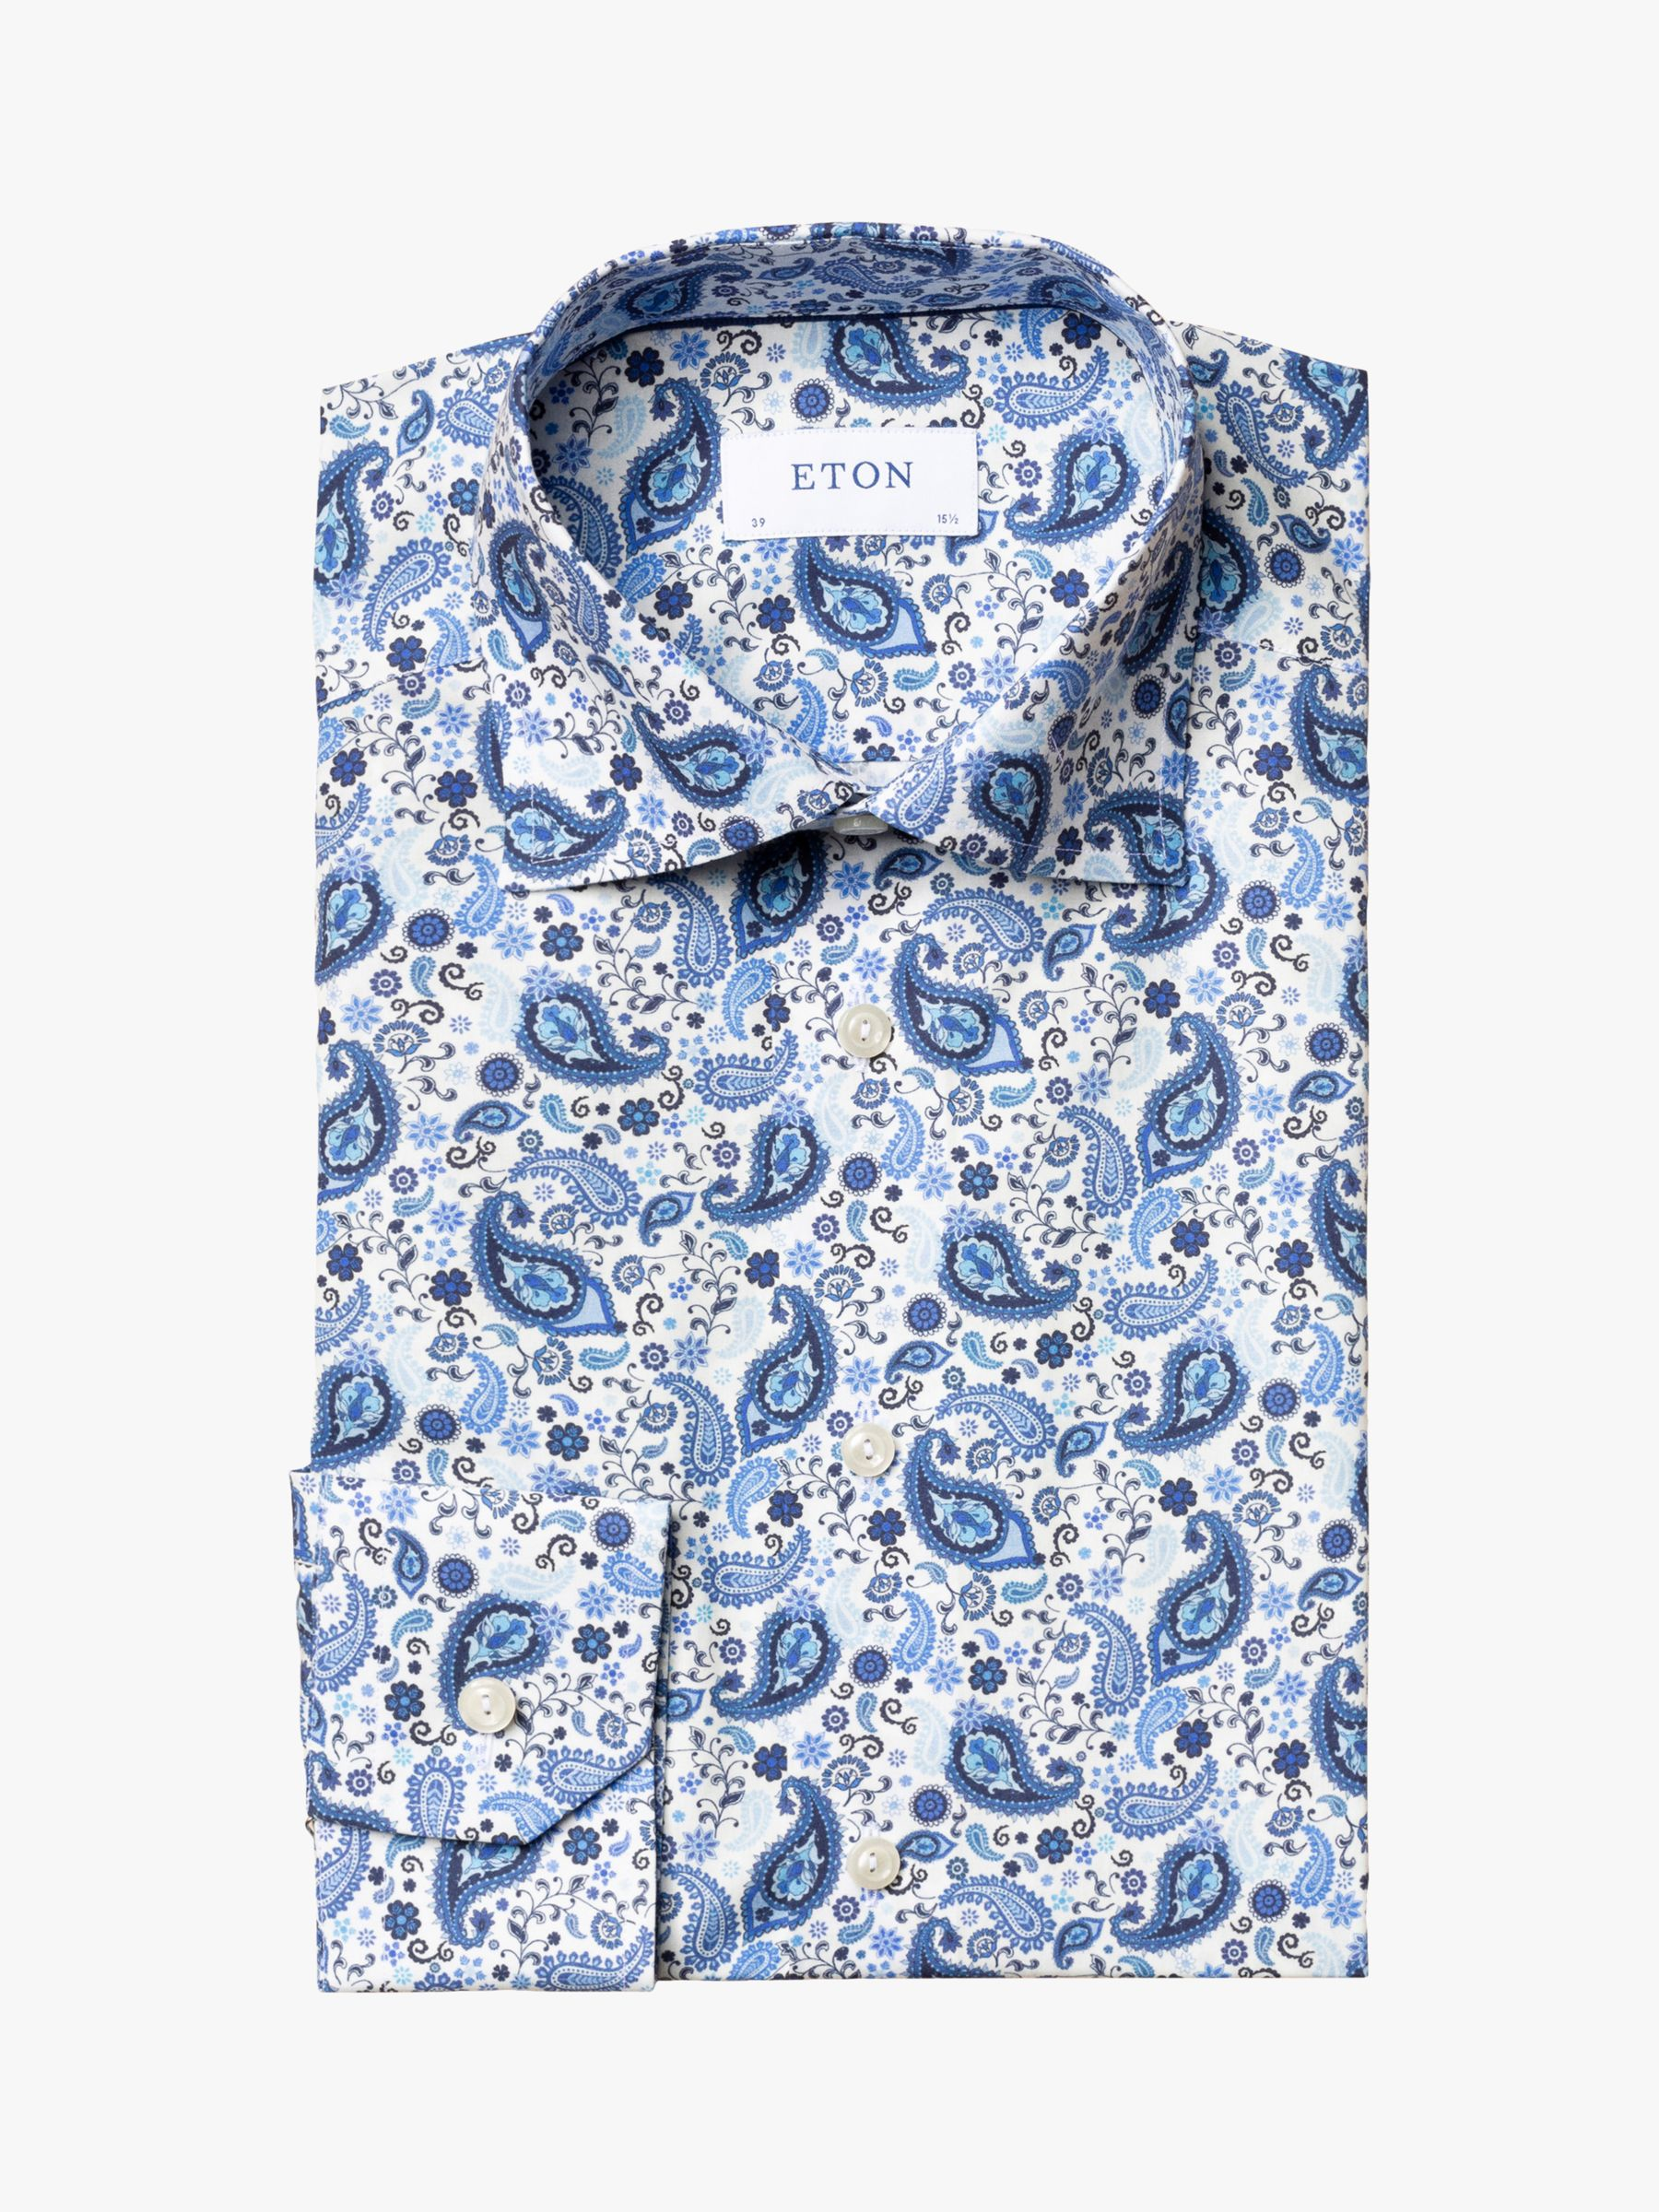 Eton Eton Poplin Paisley Print Contemporary Fit Shirt, Blue